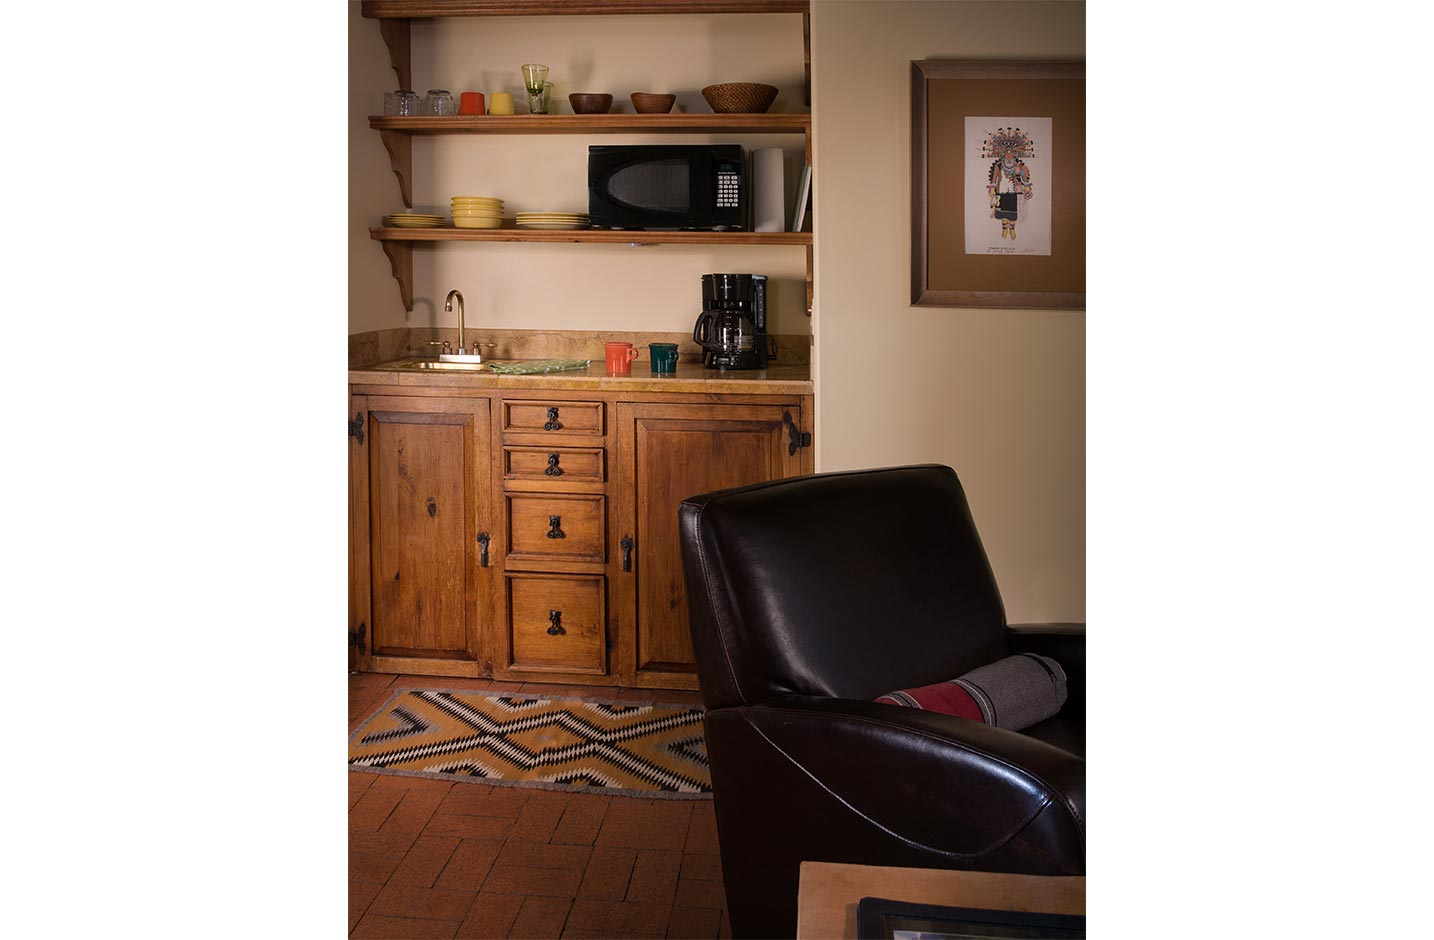 A chair at a writing desk and a wetbar with microwave and coffee maker